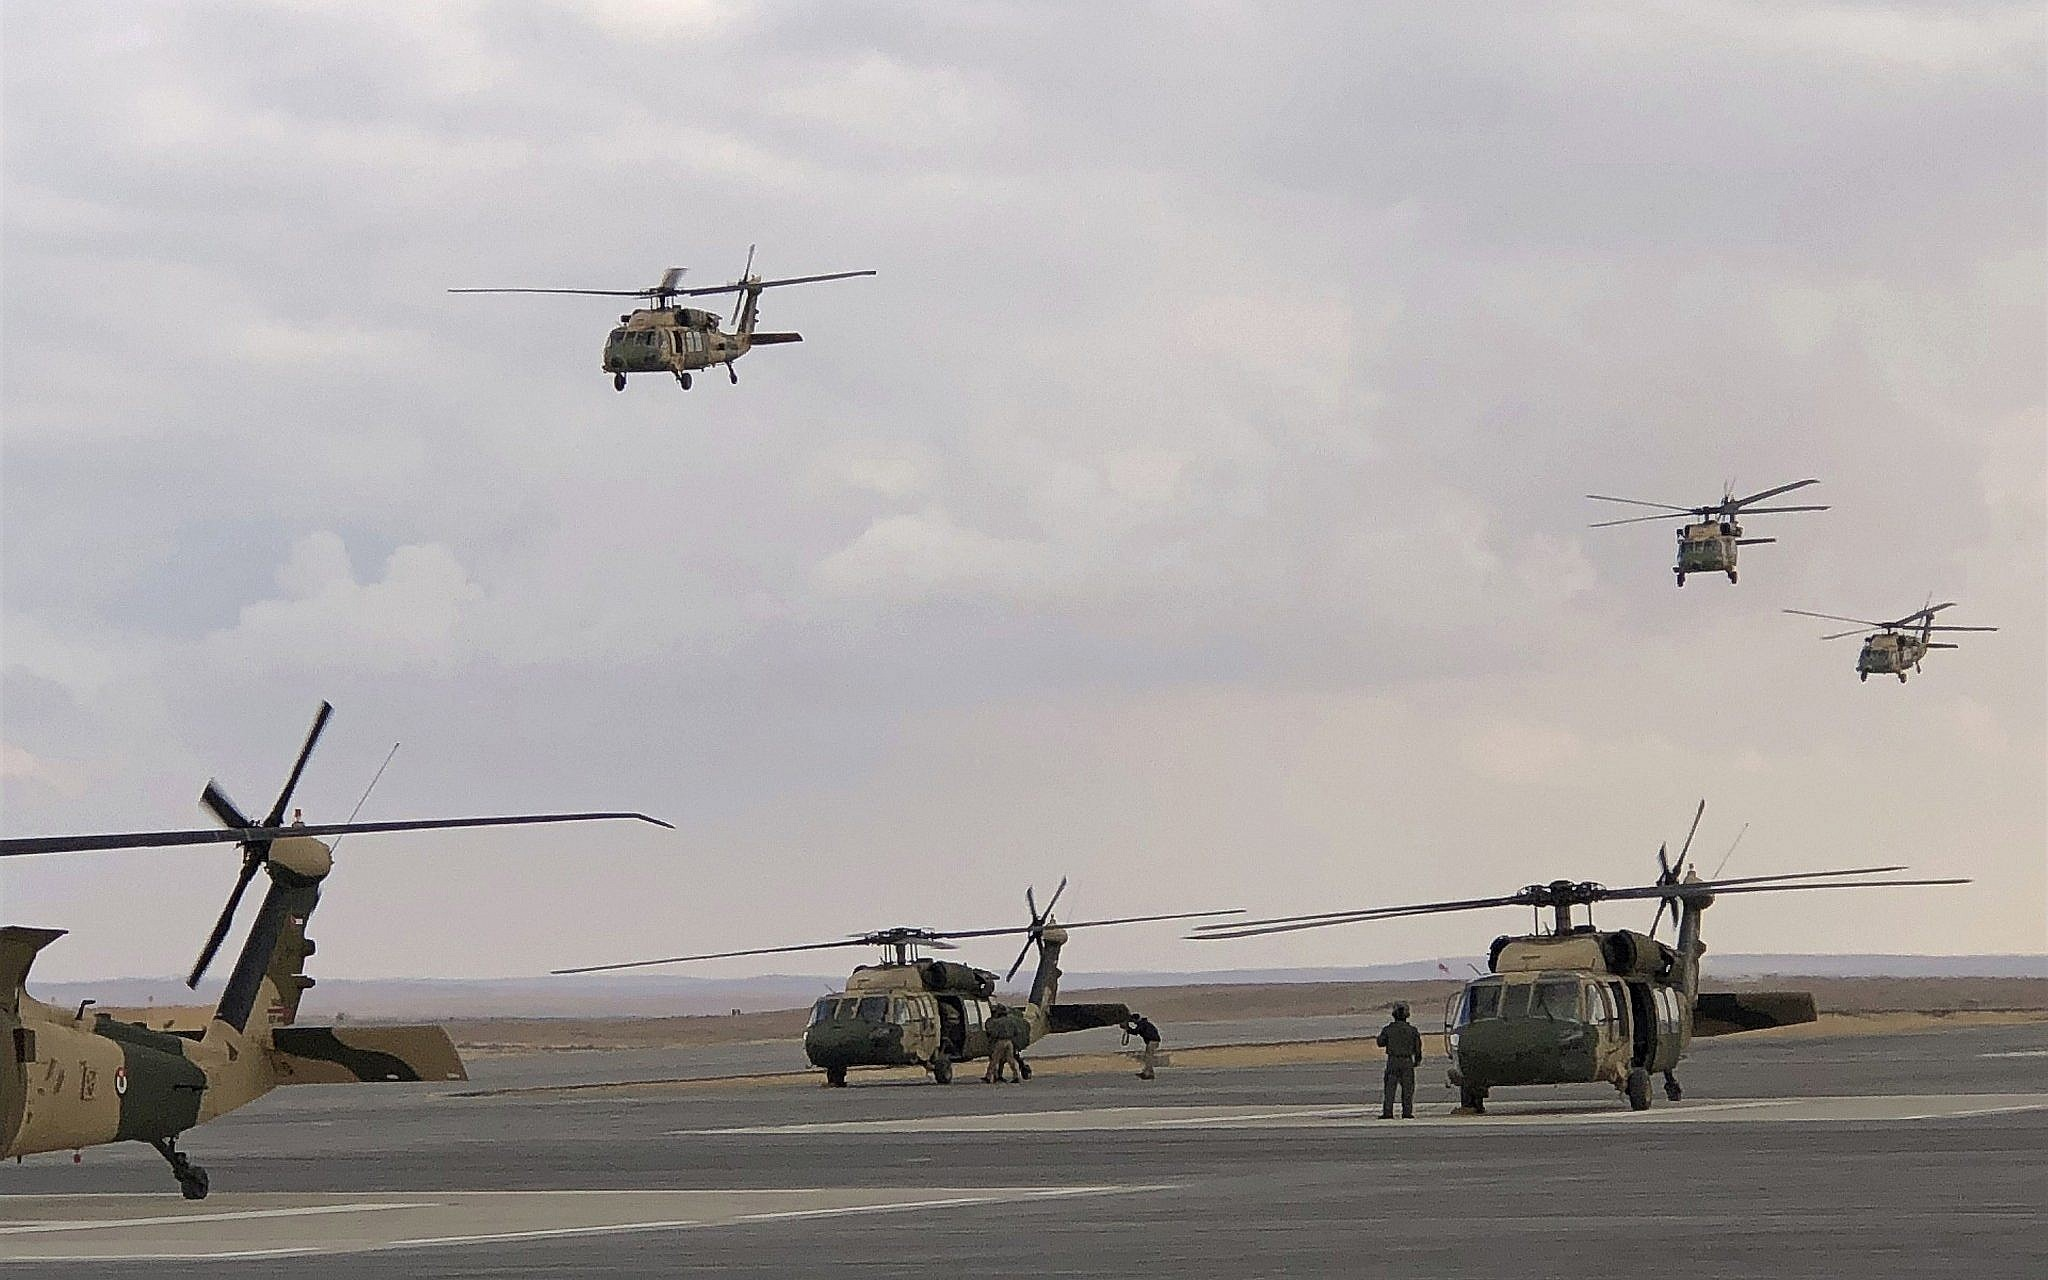 Jordan gets more US Blackhawks to bolster defenses | The Times of Israel